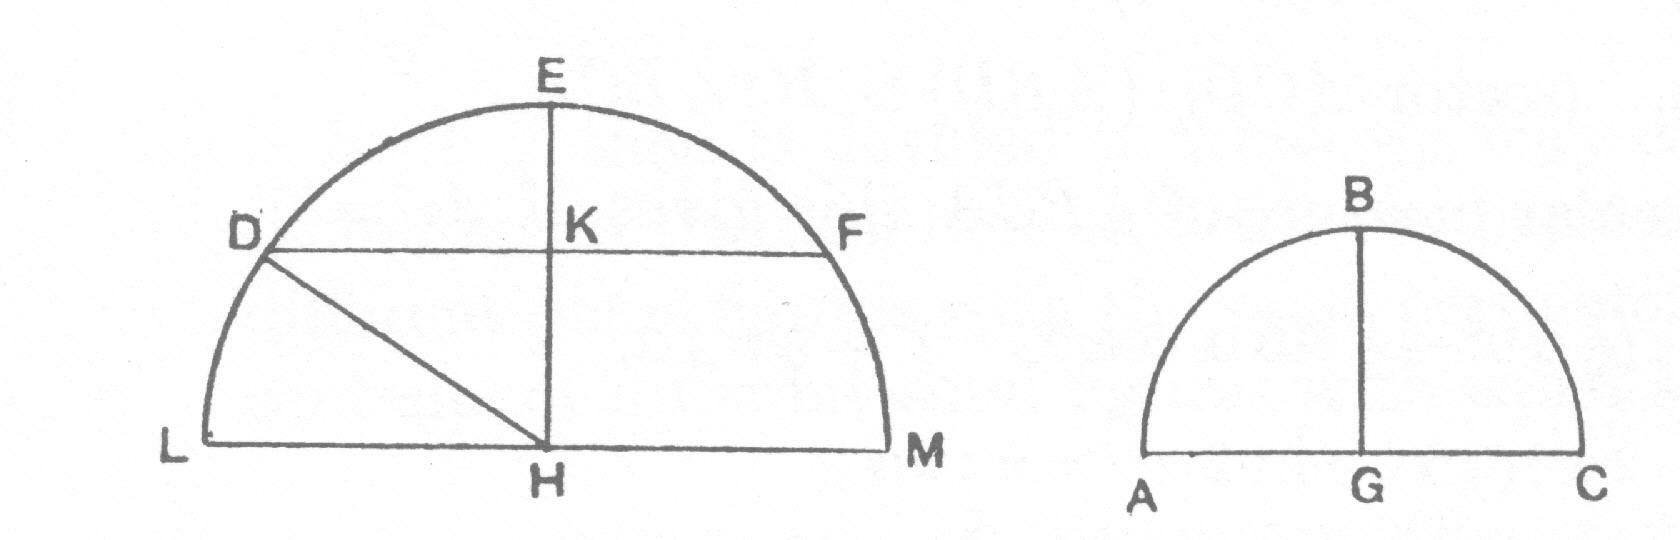 "€�semicircle And Circular Segment"" From [heath, 392]"